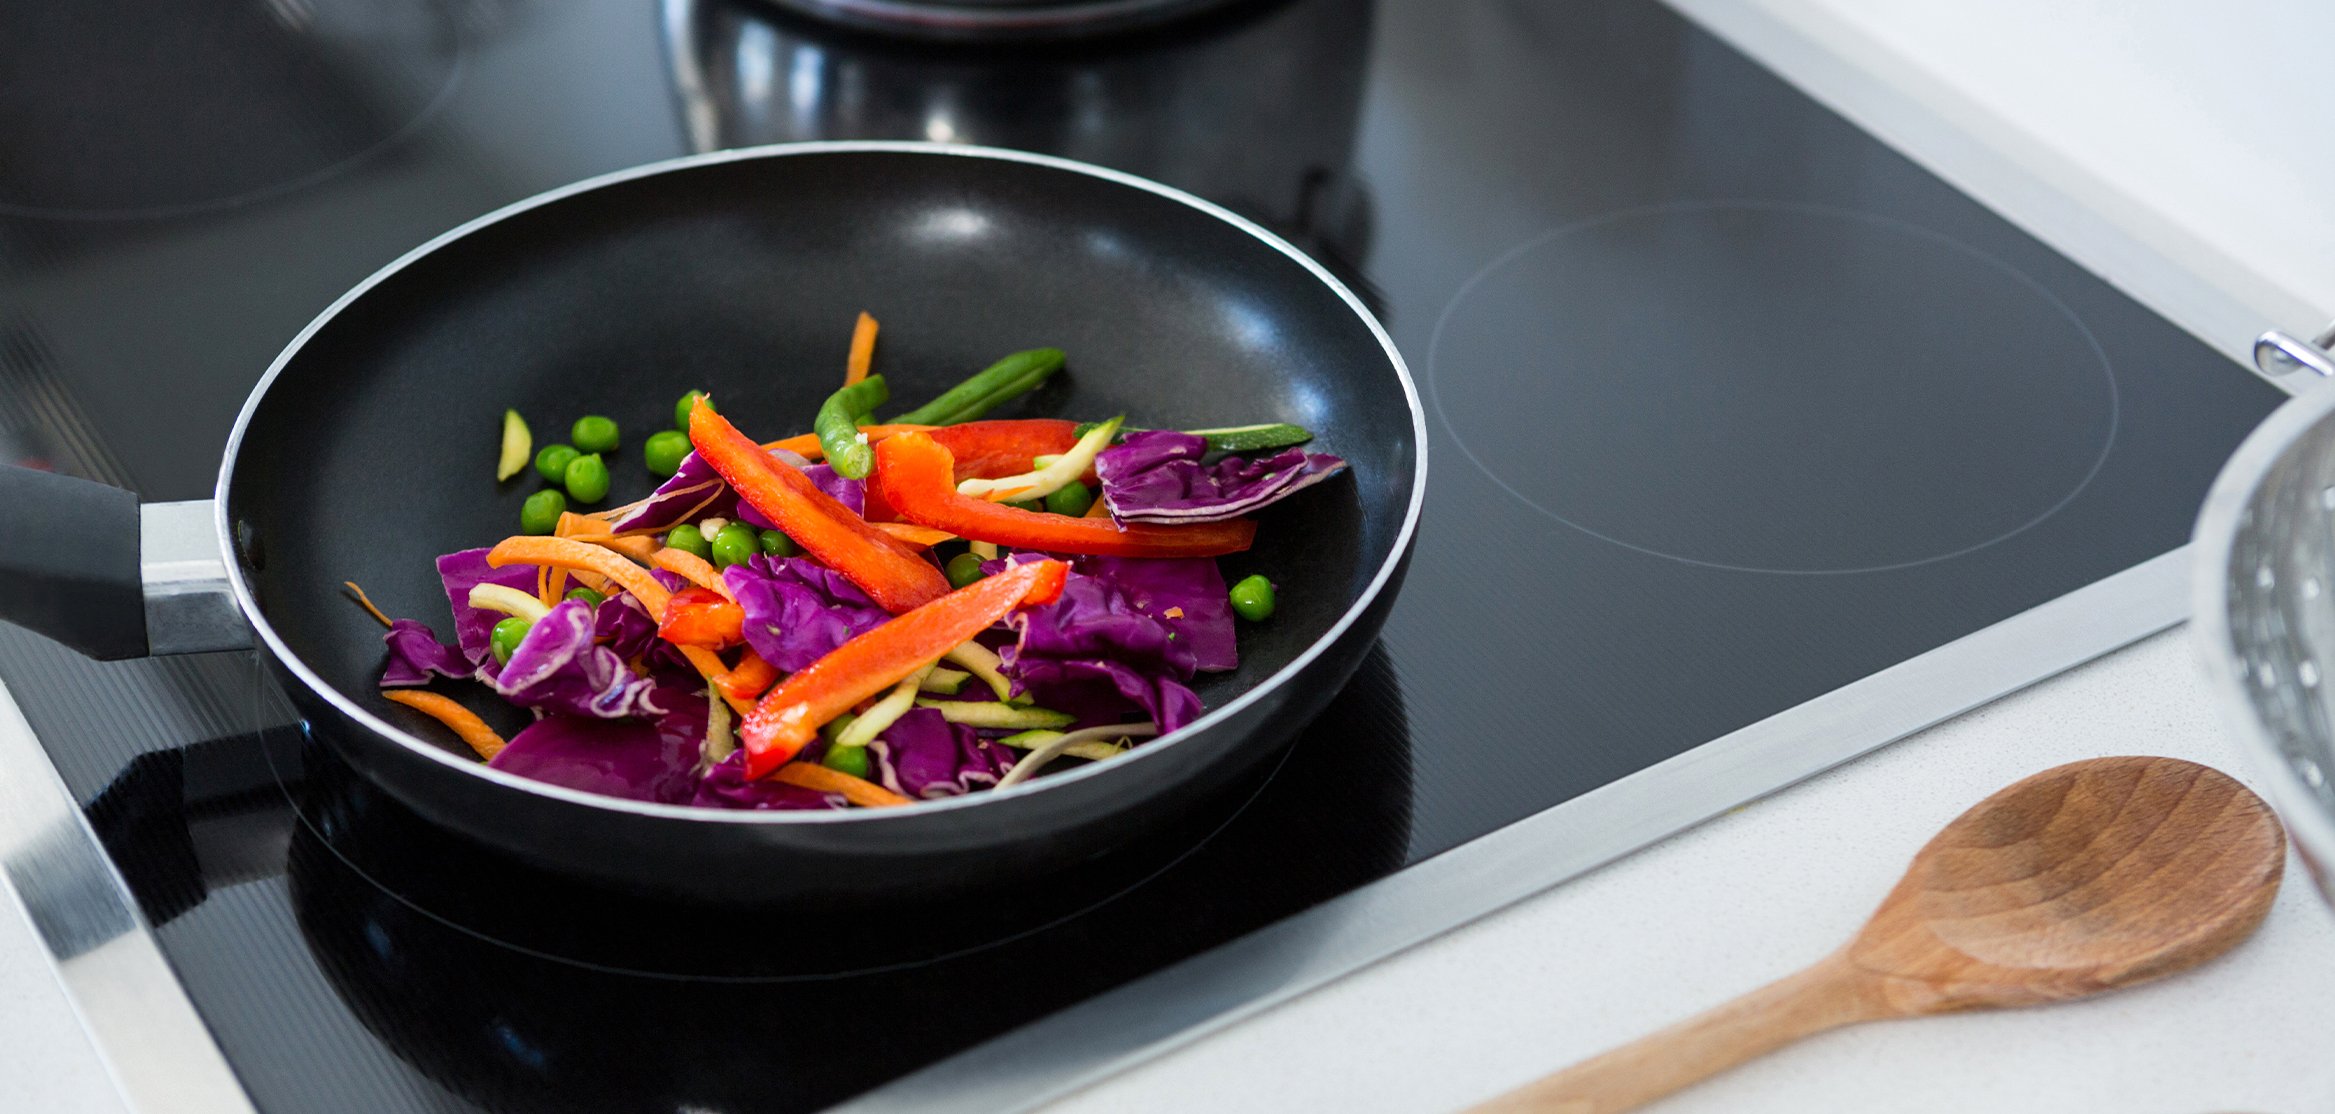 Step-by-Step Guide on How to Use an Induction Cooktop